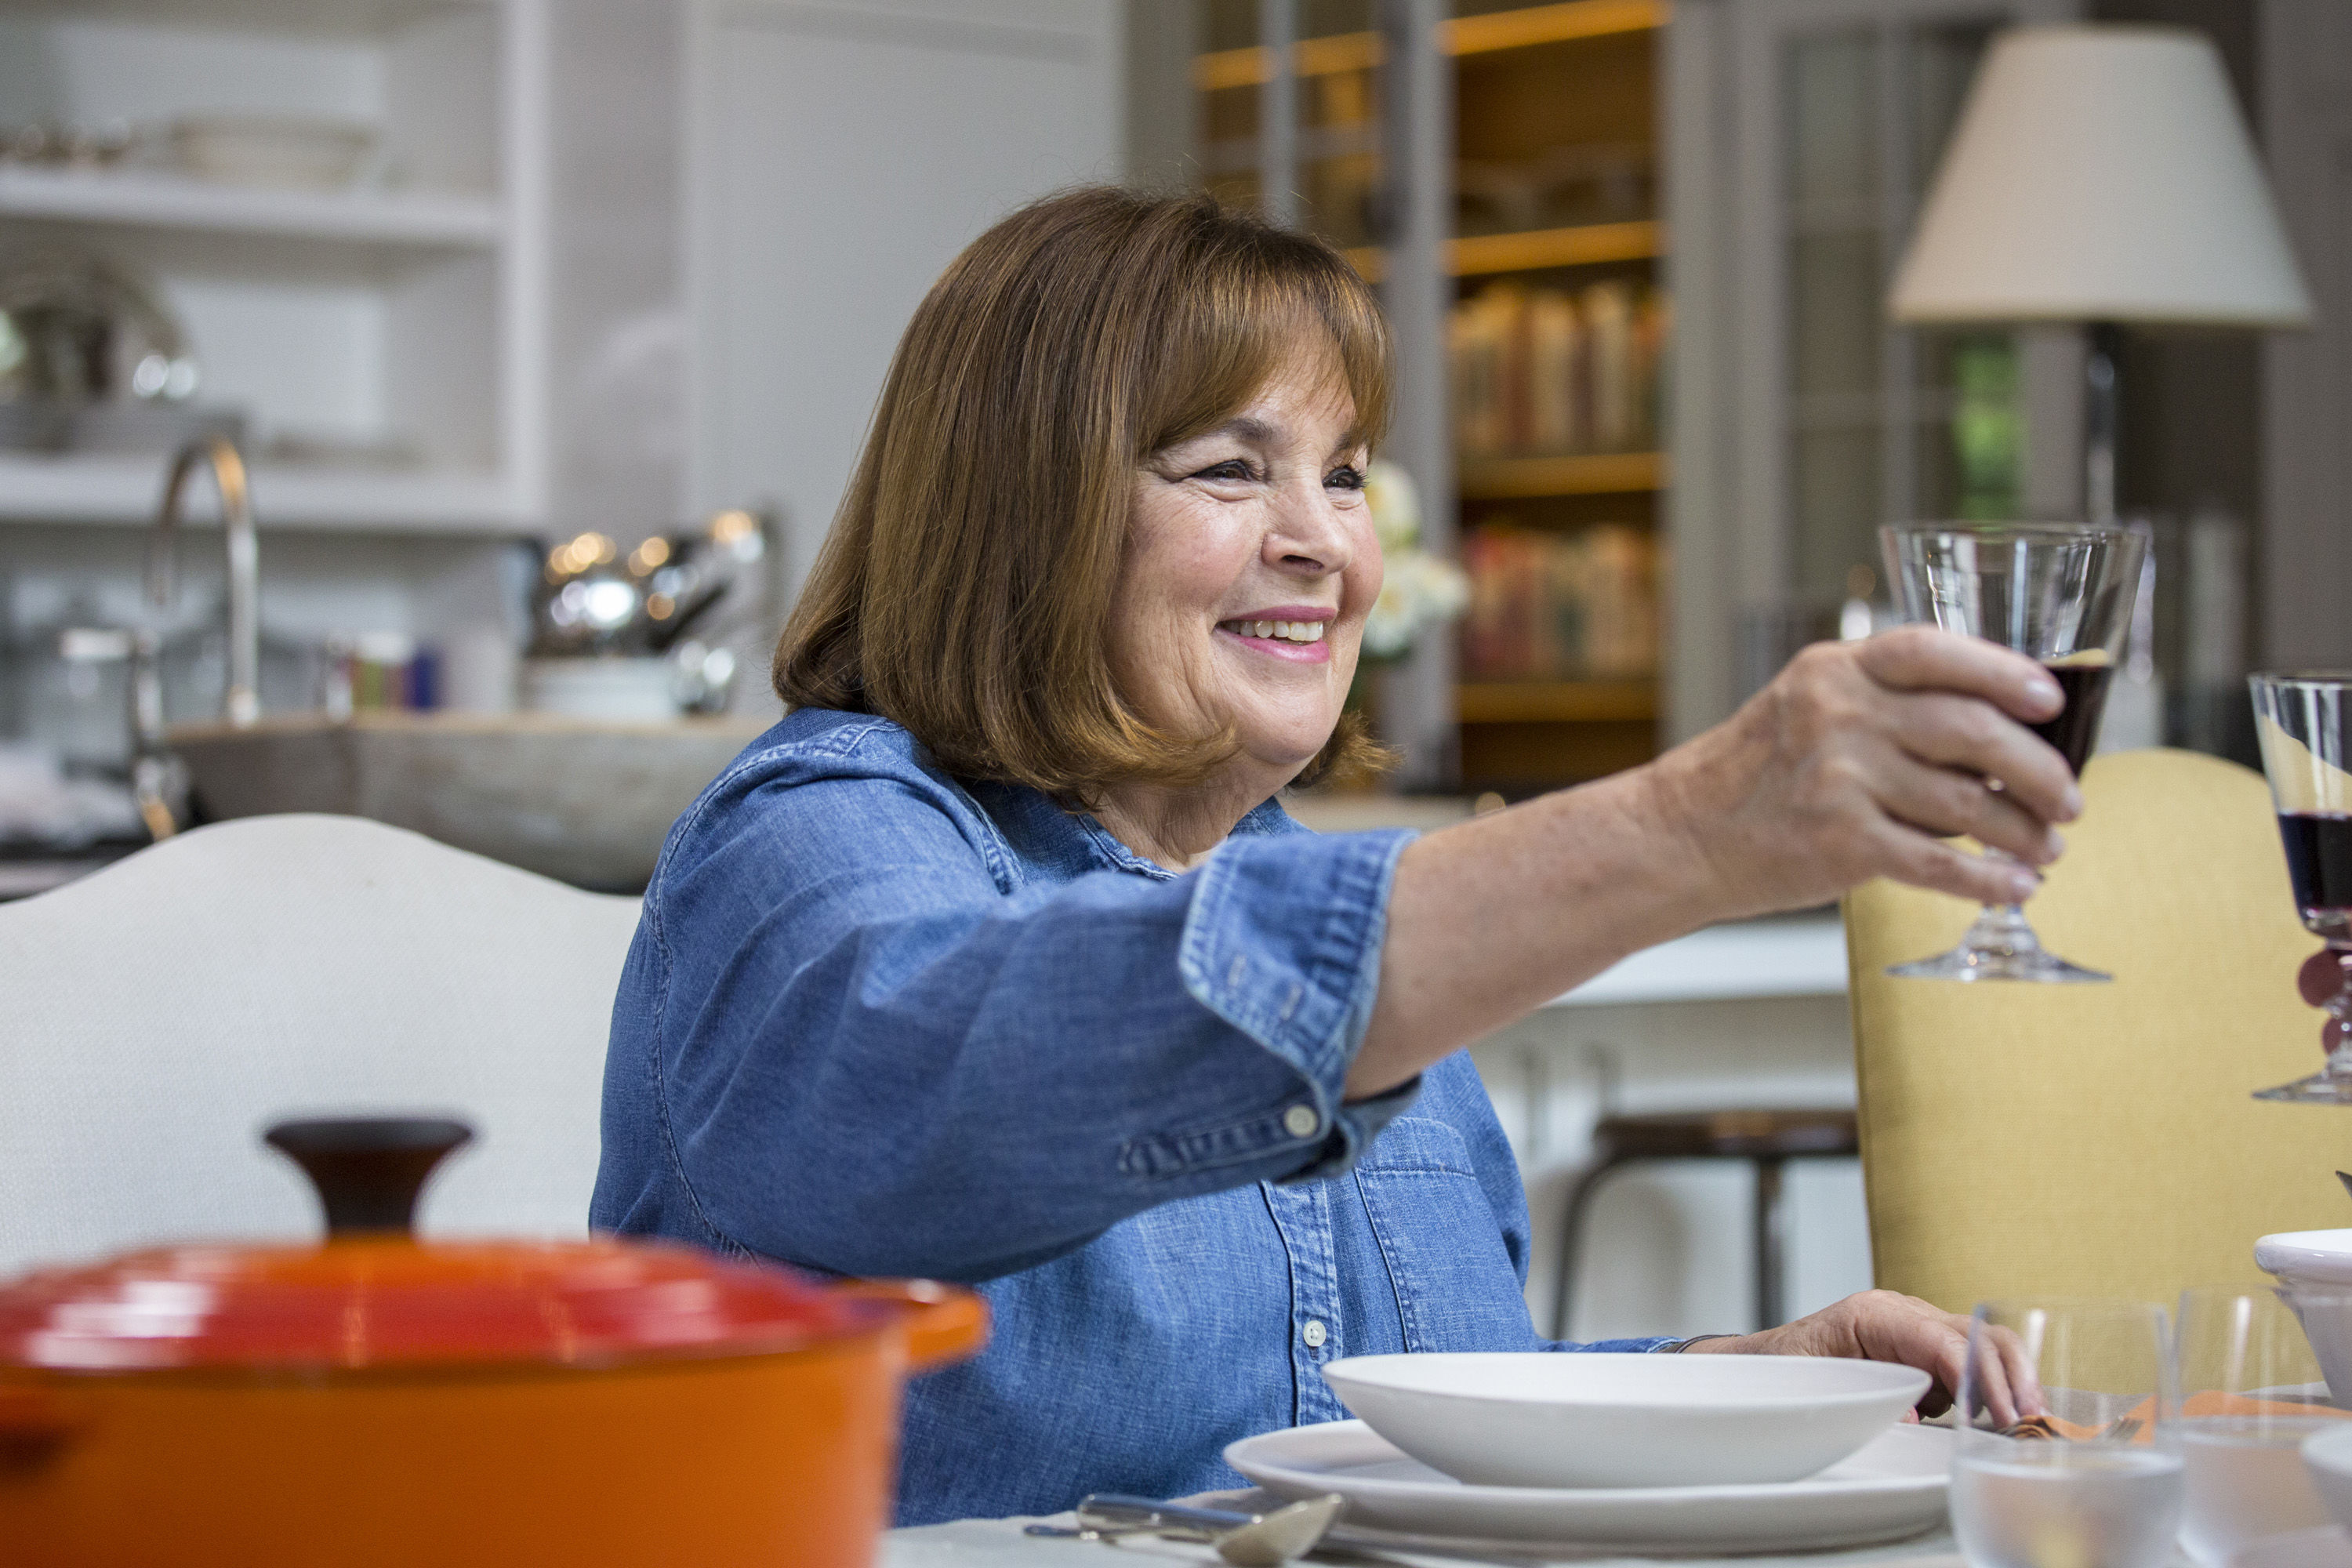 The One Thing Everyone Should Know How To Make, According to Ina Garten